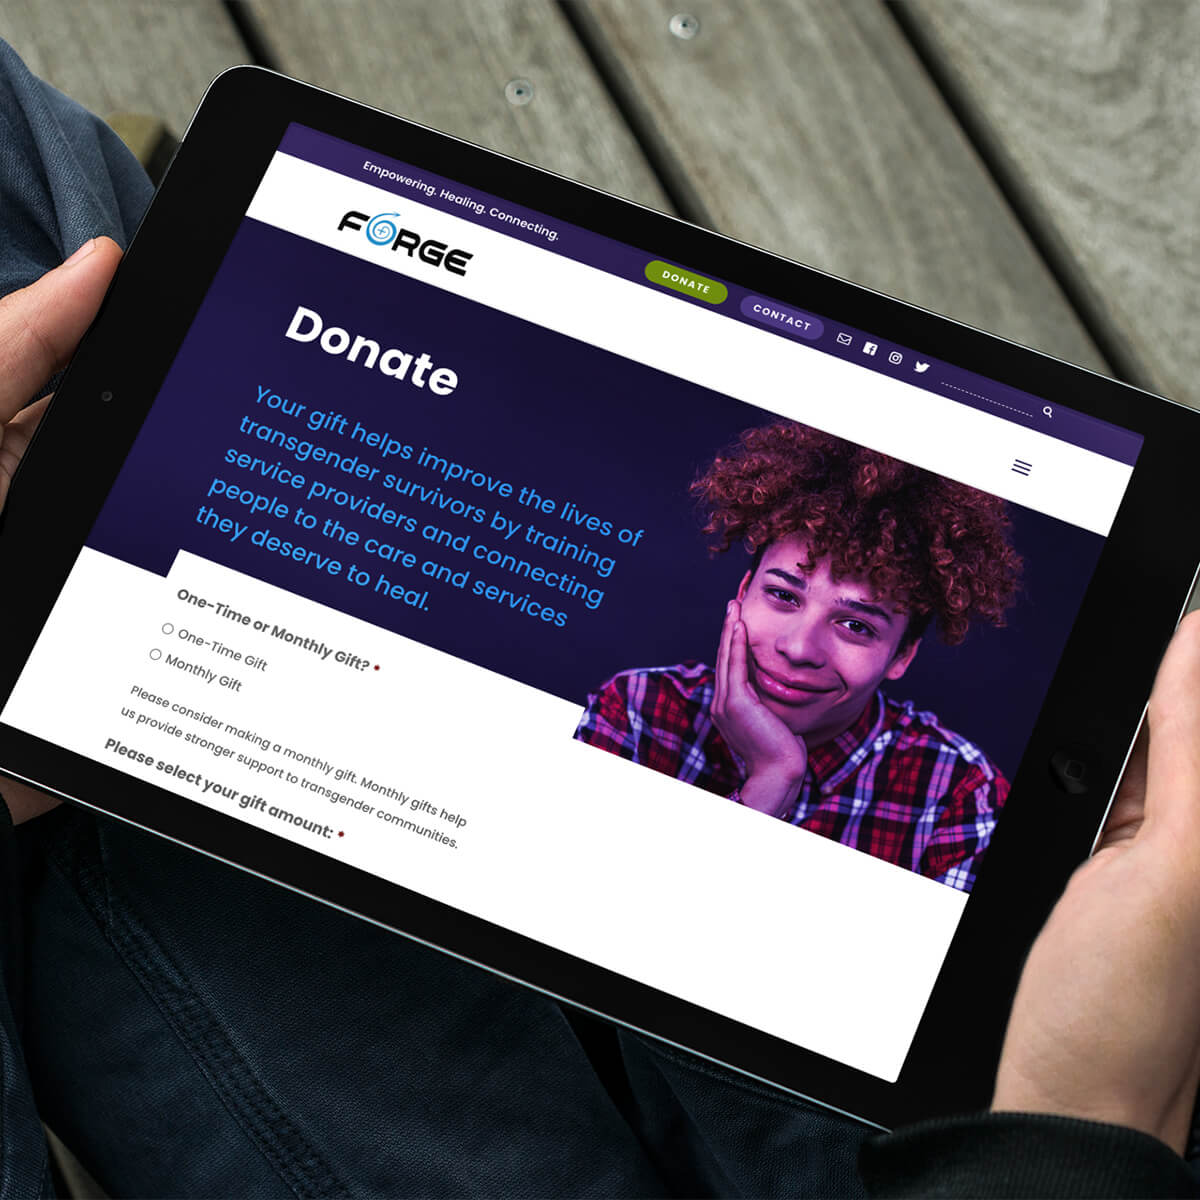 Hands holding tablet showing FORGE website donate page